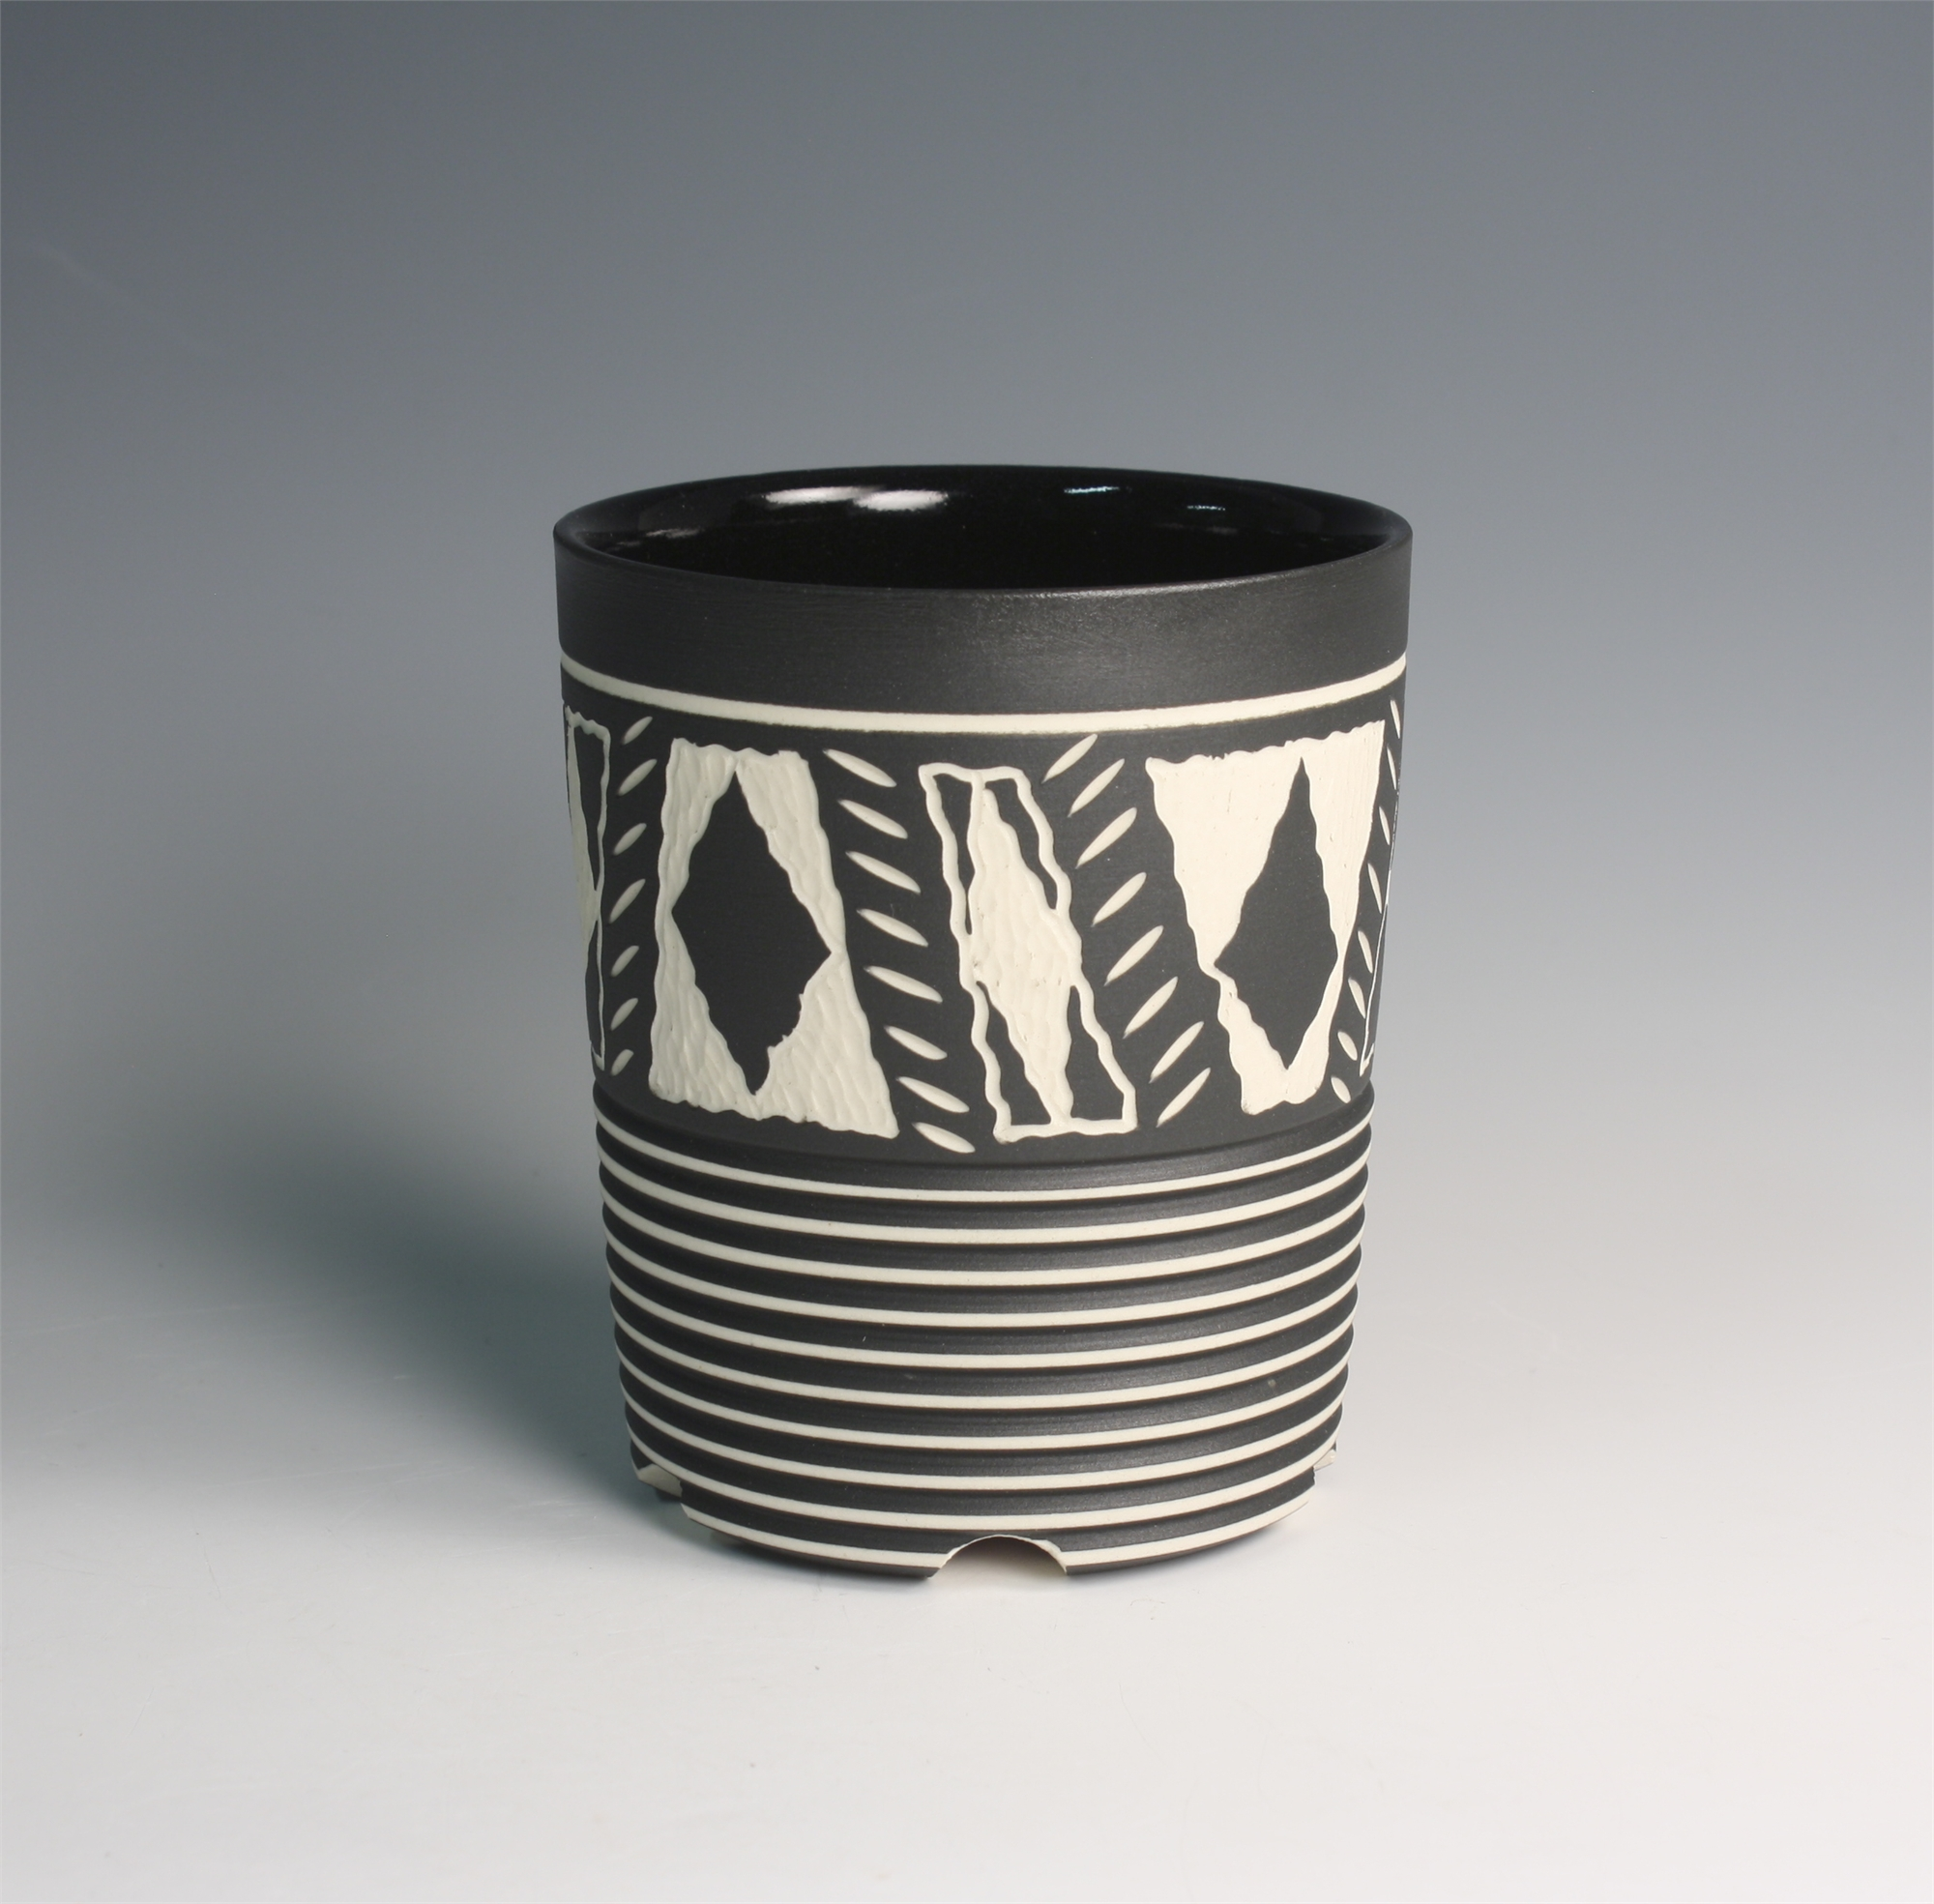 Cup (Black Diamonds) by Chris Casey